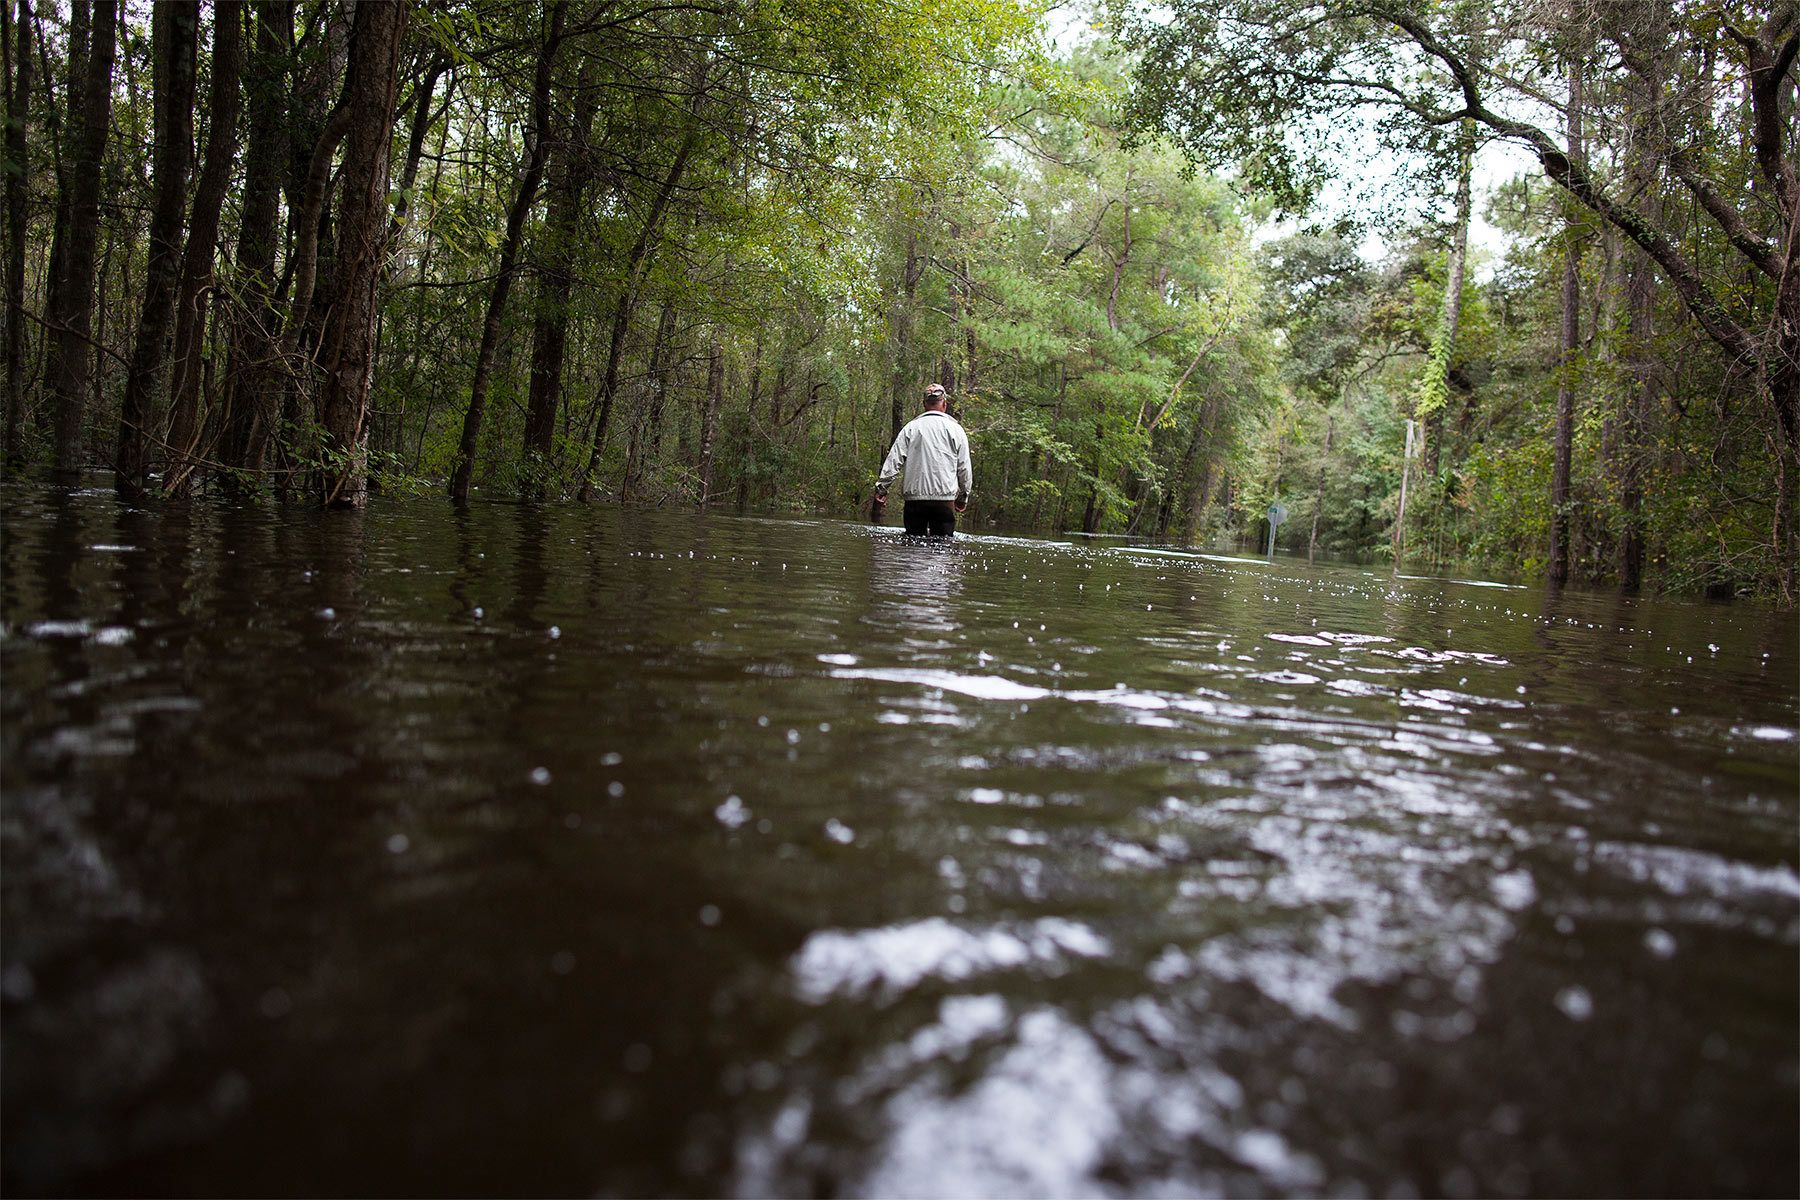 David Carroll of Waccamaw Lake Drive, walks down his flood covered road to meet family in Conway, South Carolina October 6, 2015. Carroll has been living with several feet of water around his home since Saturday. Floodwaters from unprecedented rainfall in South Carolina have killed 11 people, closed some 550 roads and bridges and prompted hundreds of rescues of people trapped in homes and cars, officials said on Monday. REUTERS/Randall Hill